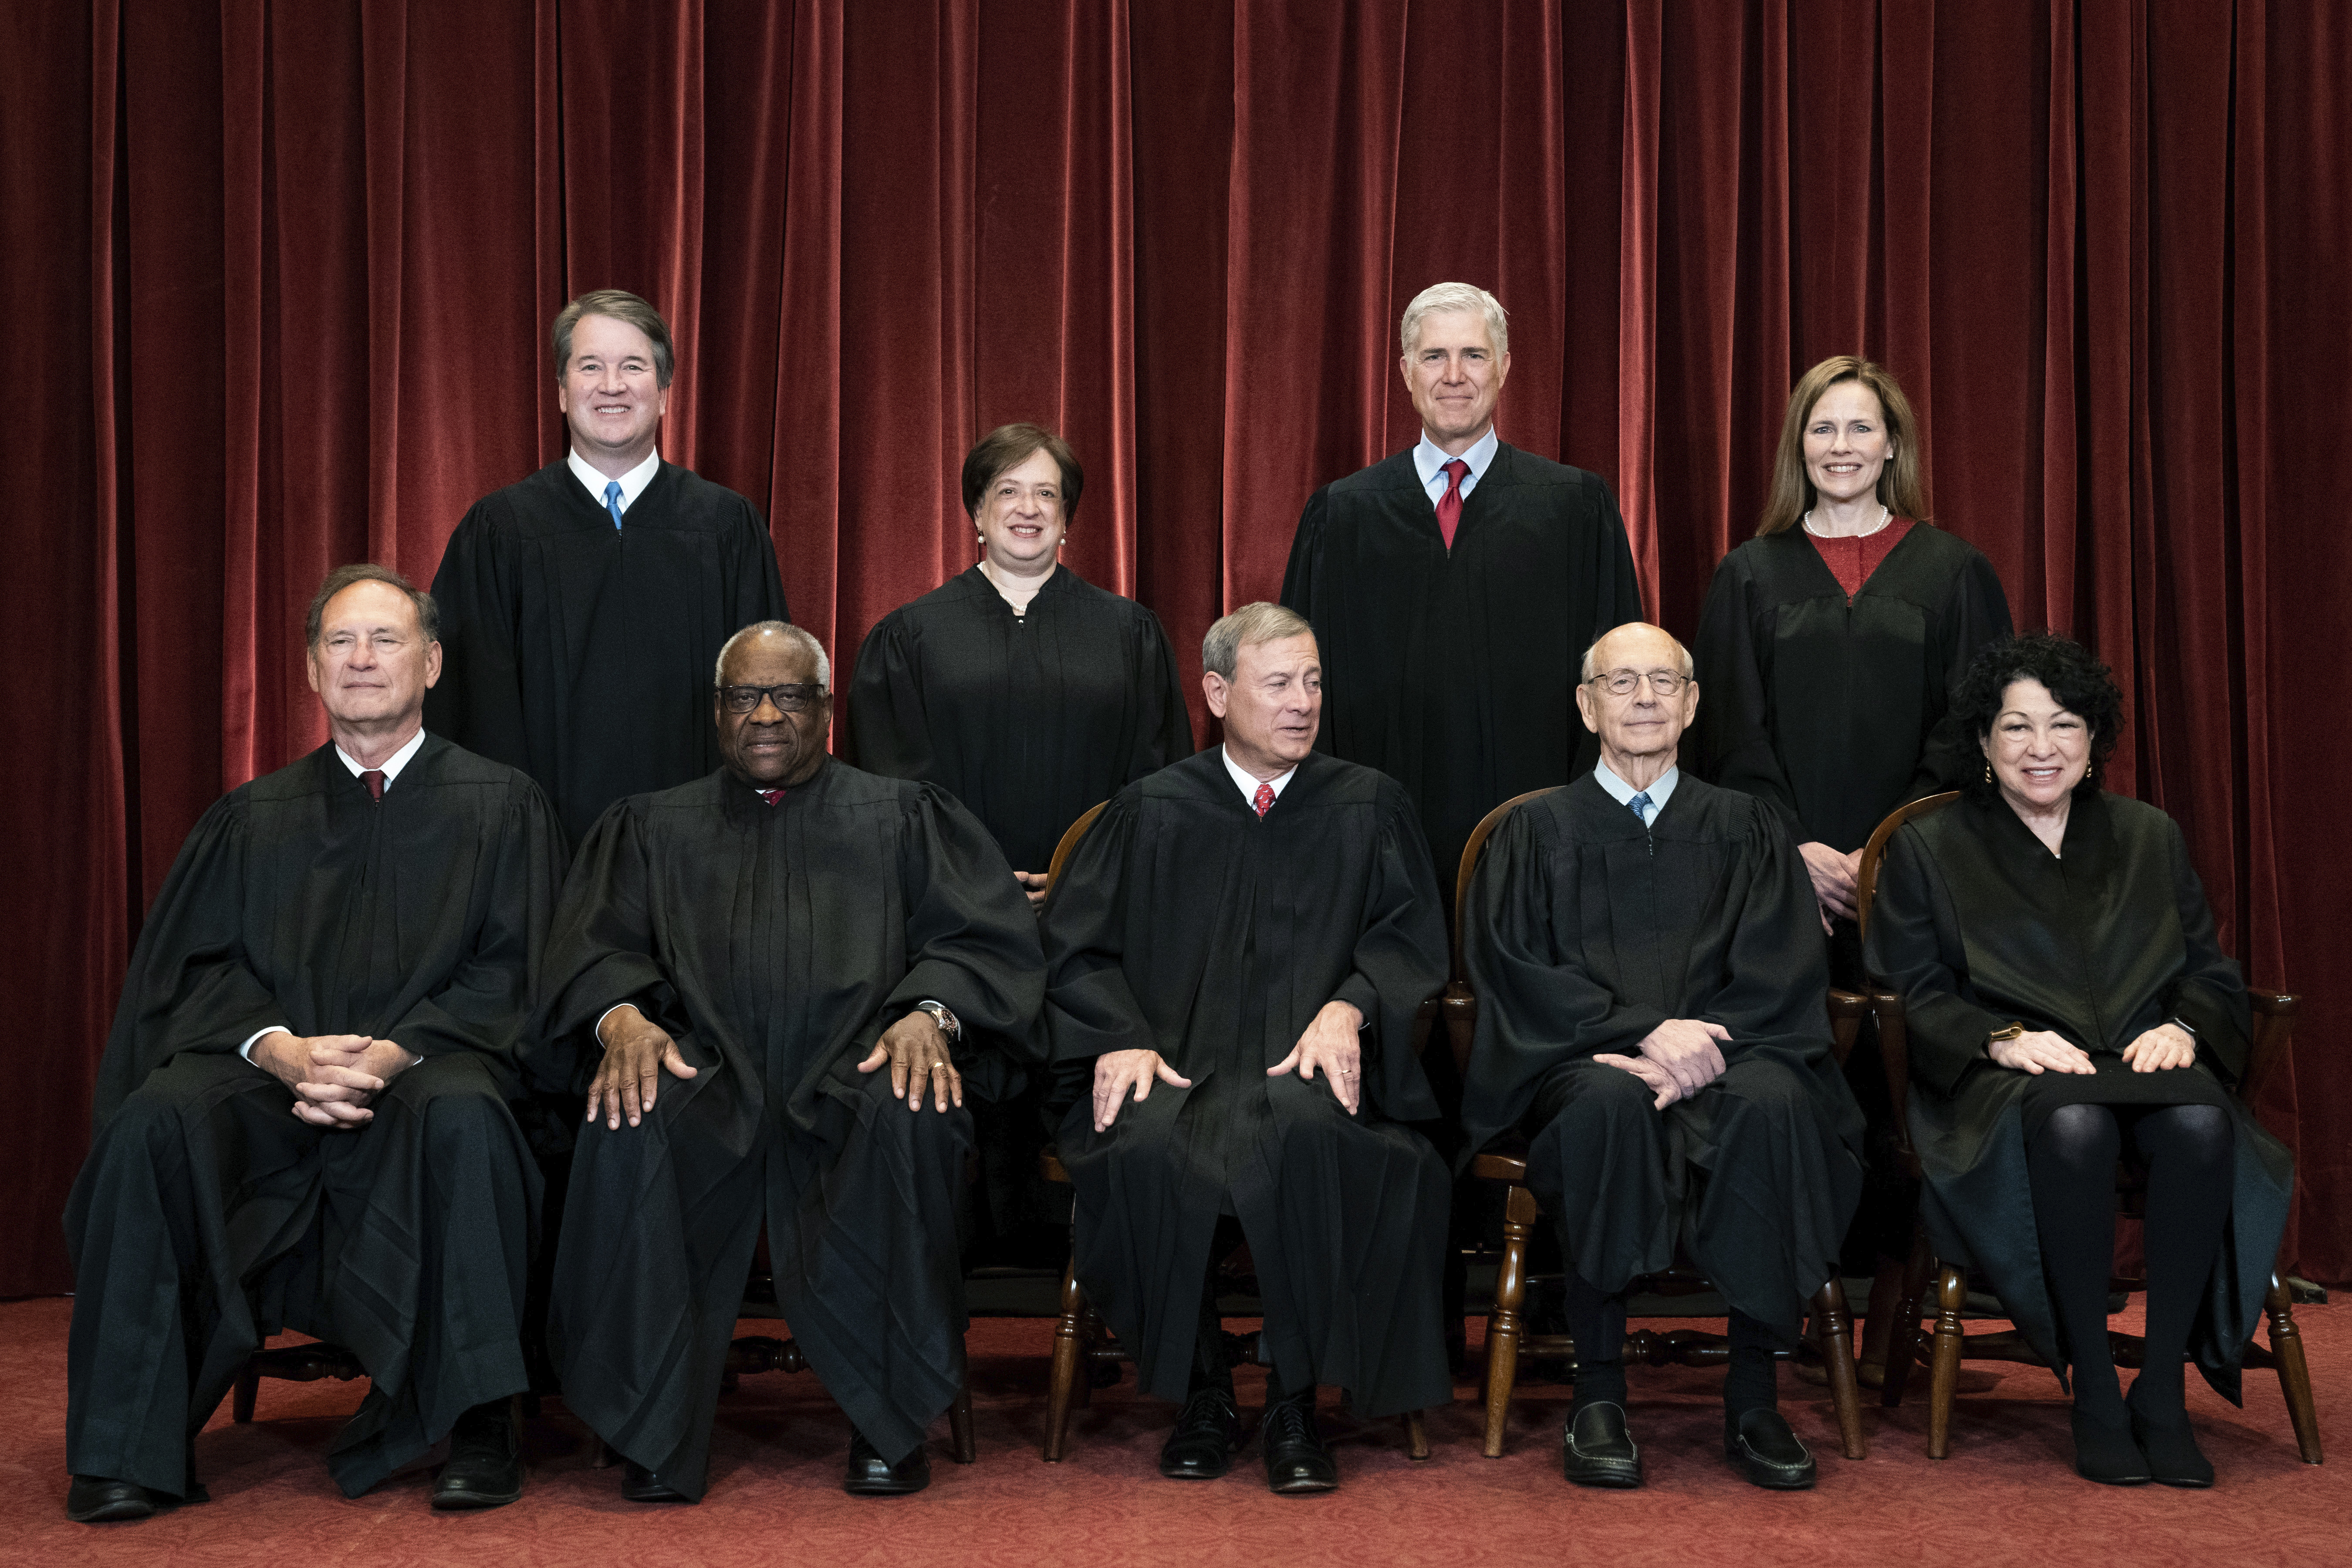 In this April 23, 2021, file photo, members of the Supreme Court pose for a group photo at the Supreme Court in Washington.